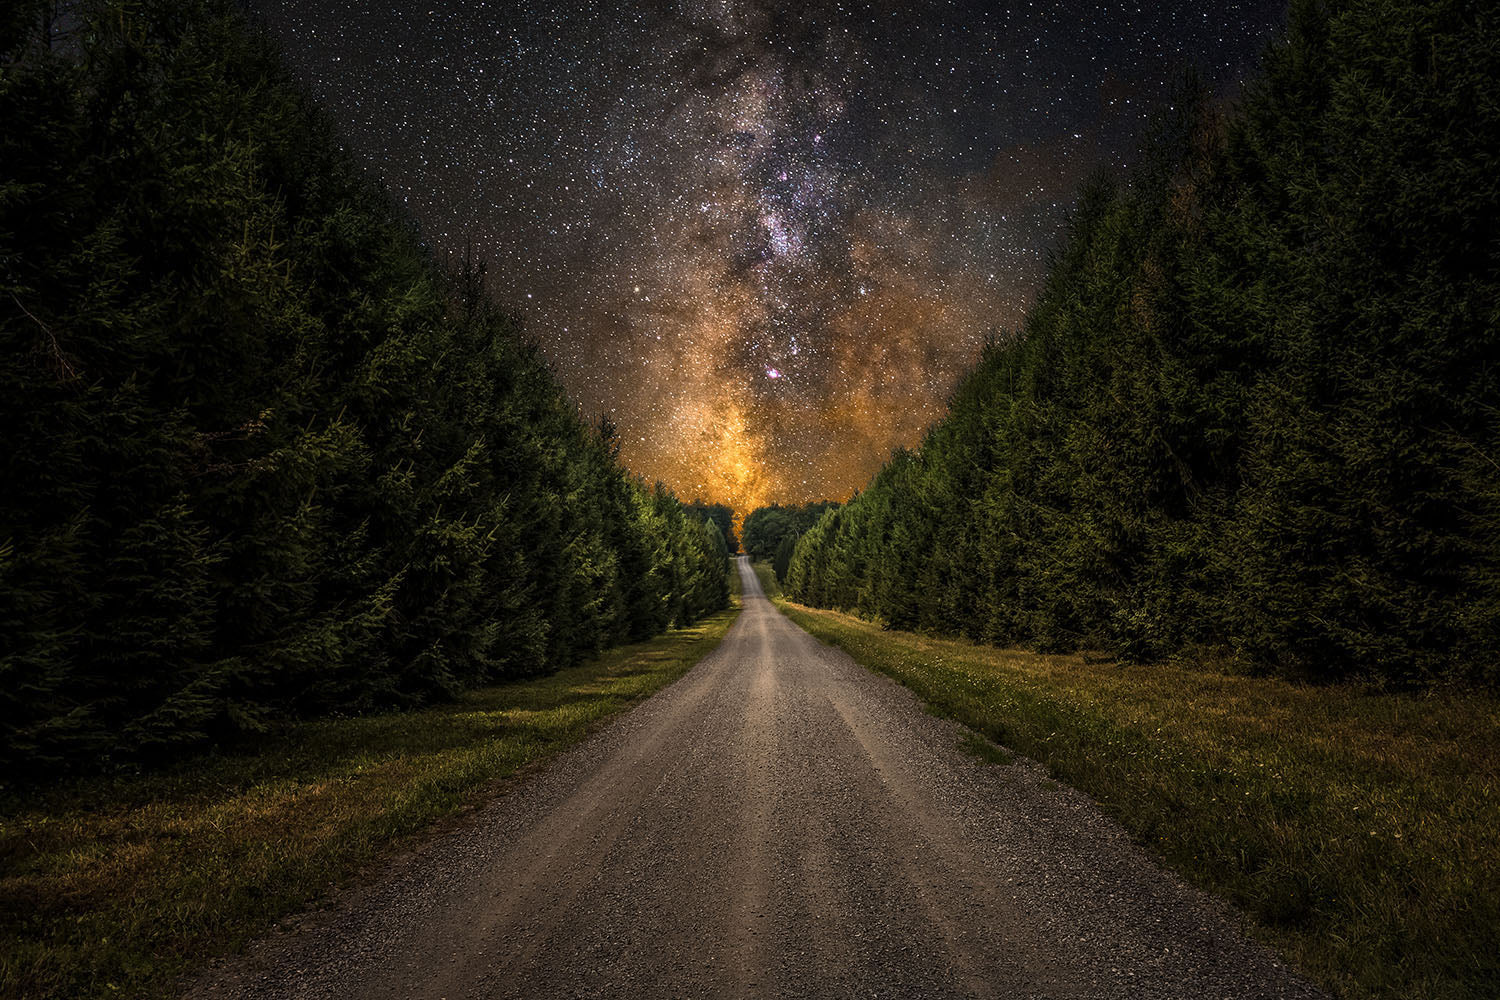 Landscape photo of the Milky Way galaxy near Cherry Springs State Park - Pennsylvania